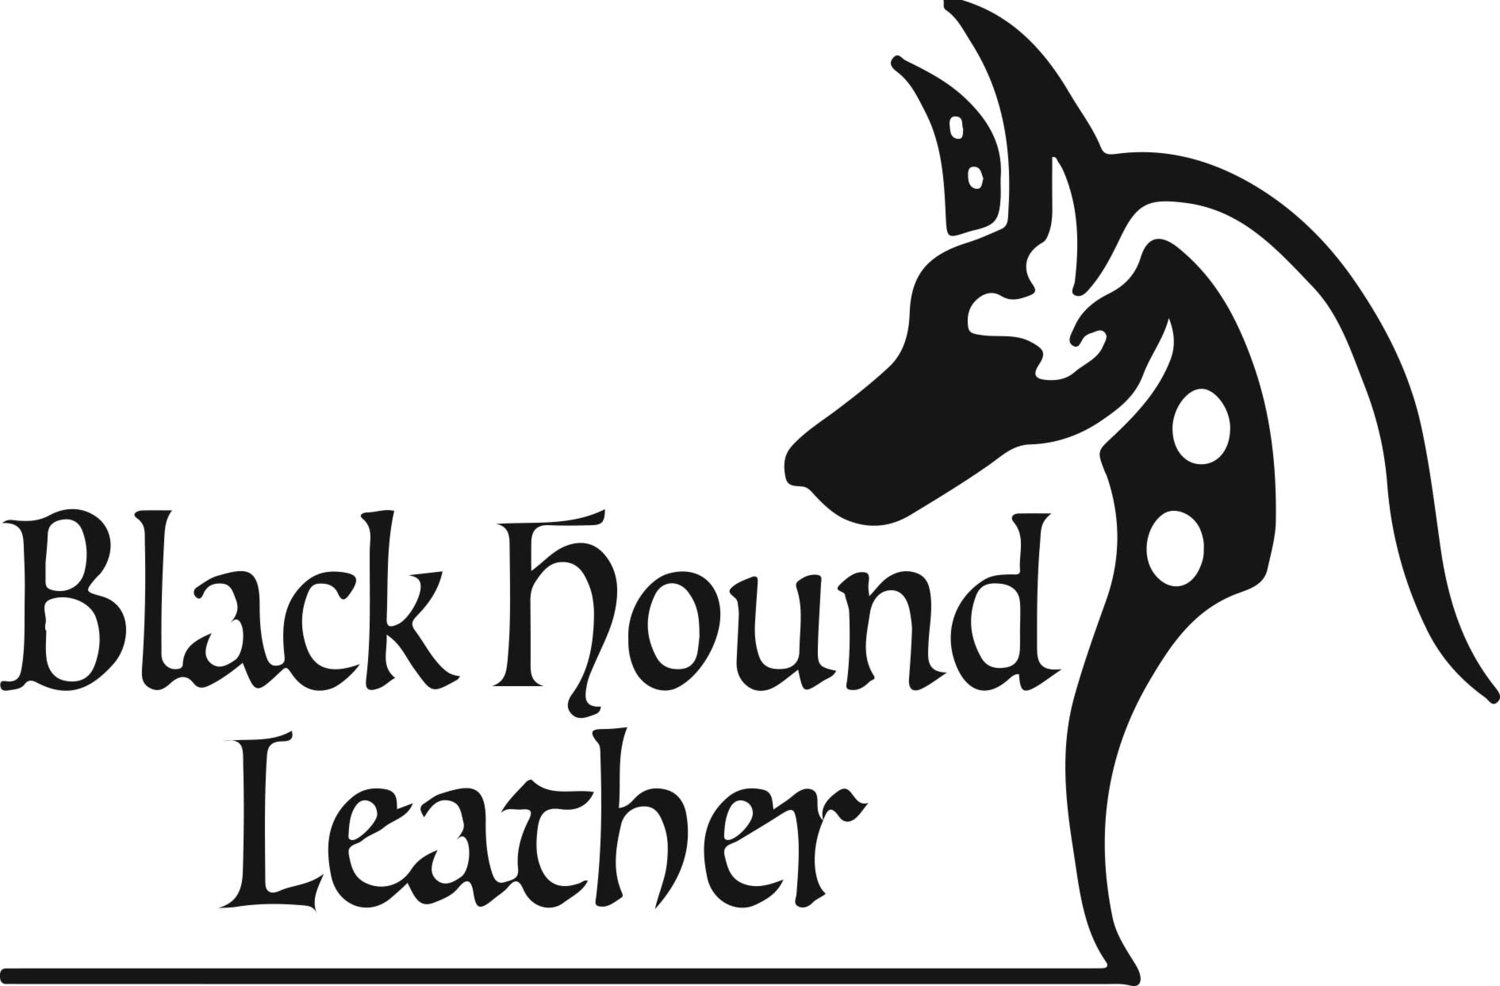 Black Hound Leather